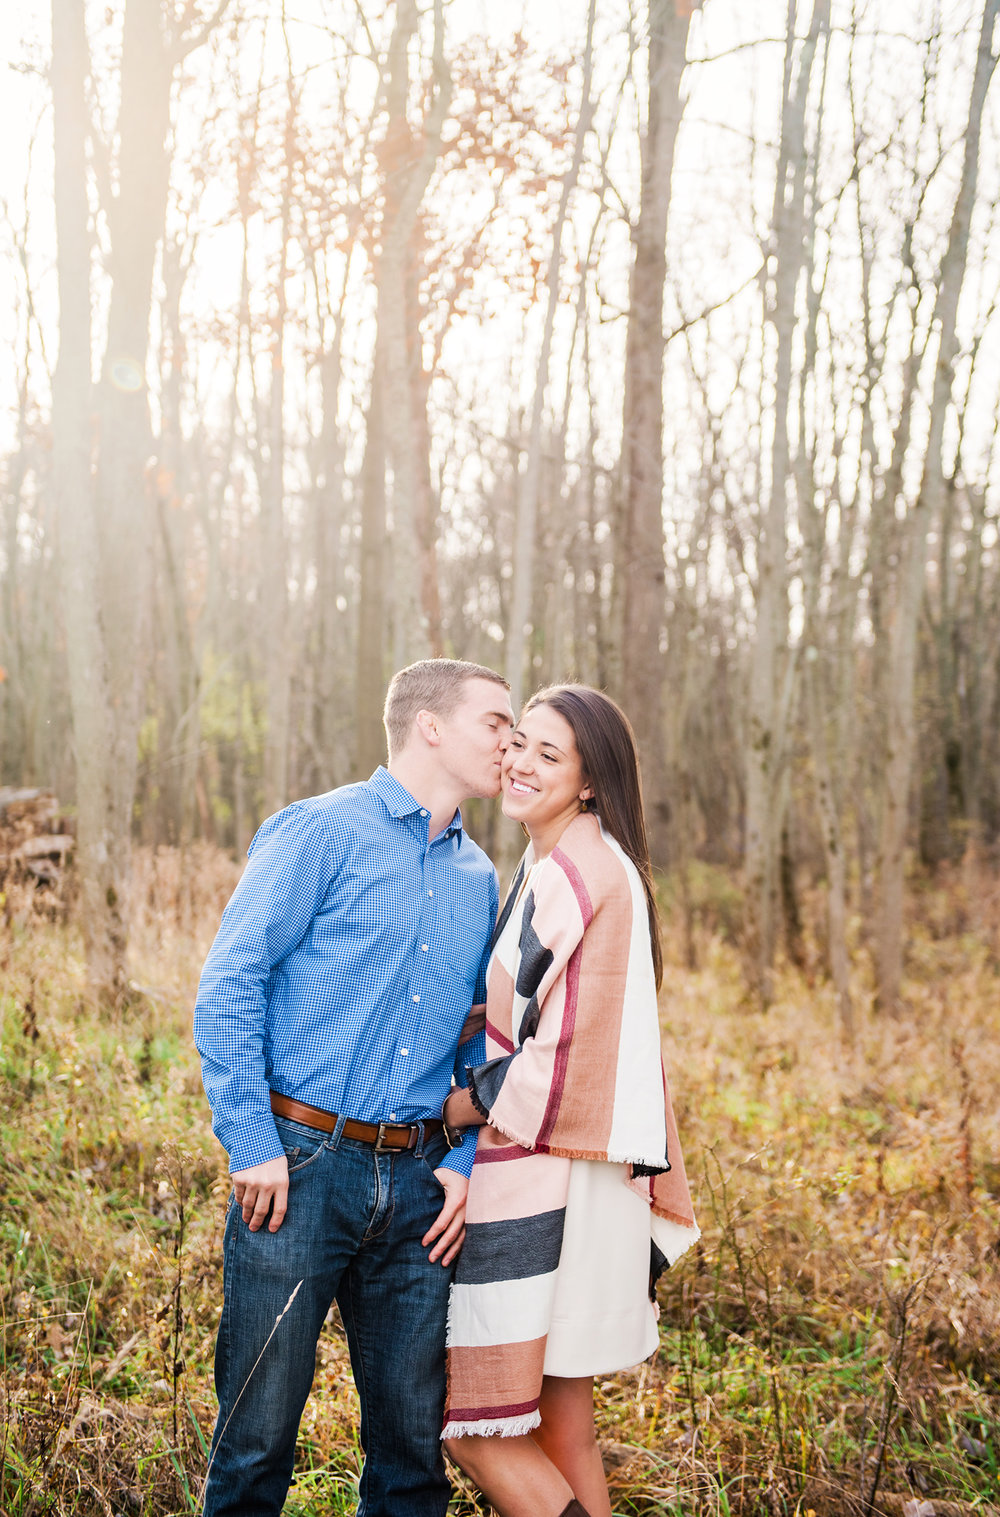 Mendon_Ponds_Park_Rochester_Engagement_Session_JILL_STUDIO_Rochester_NY_Photographer_DSC_0150.jpg